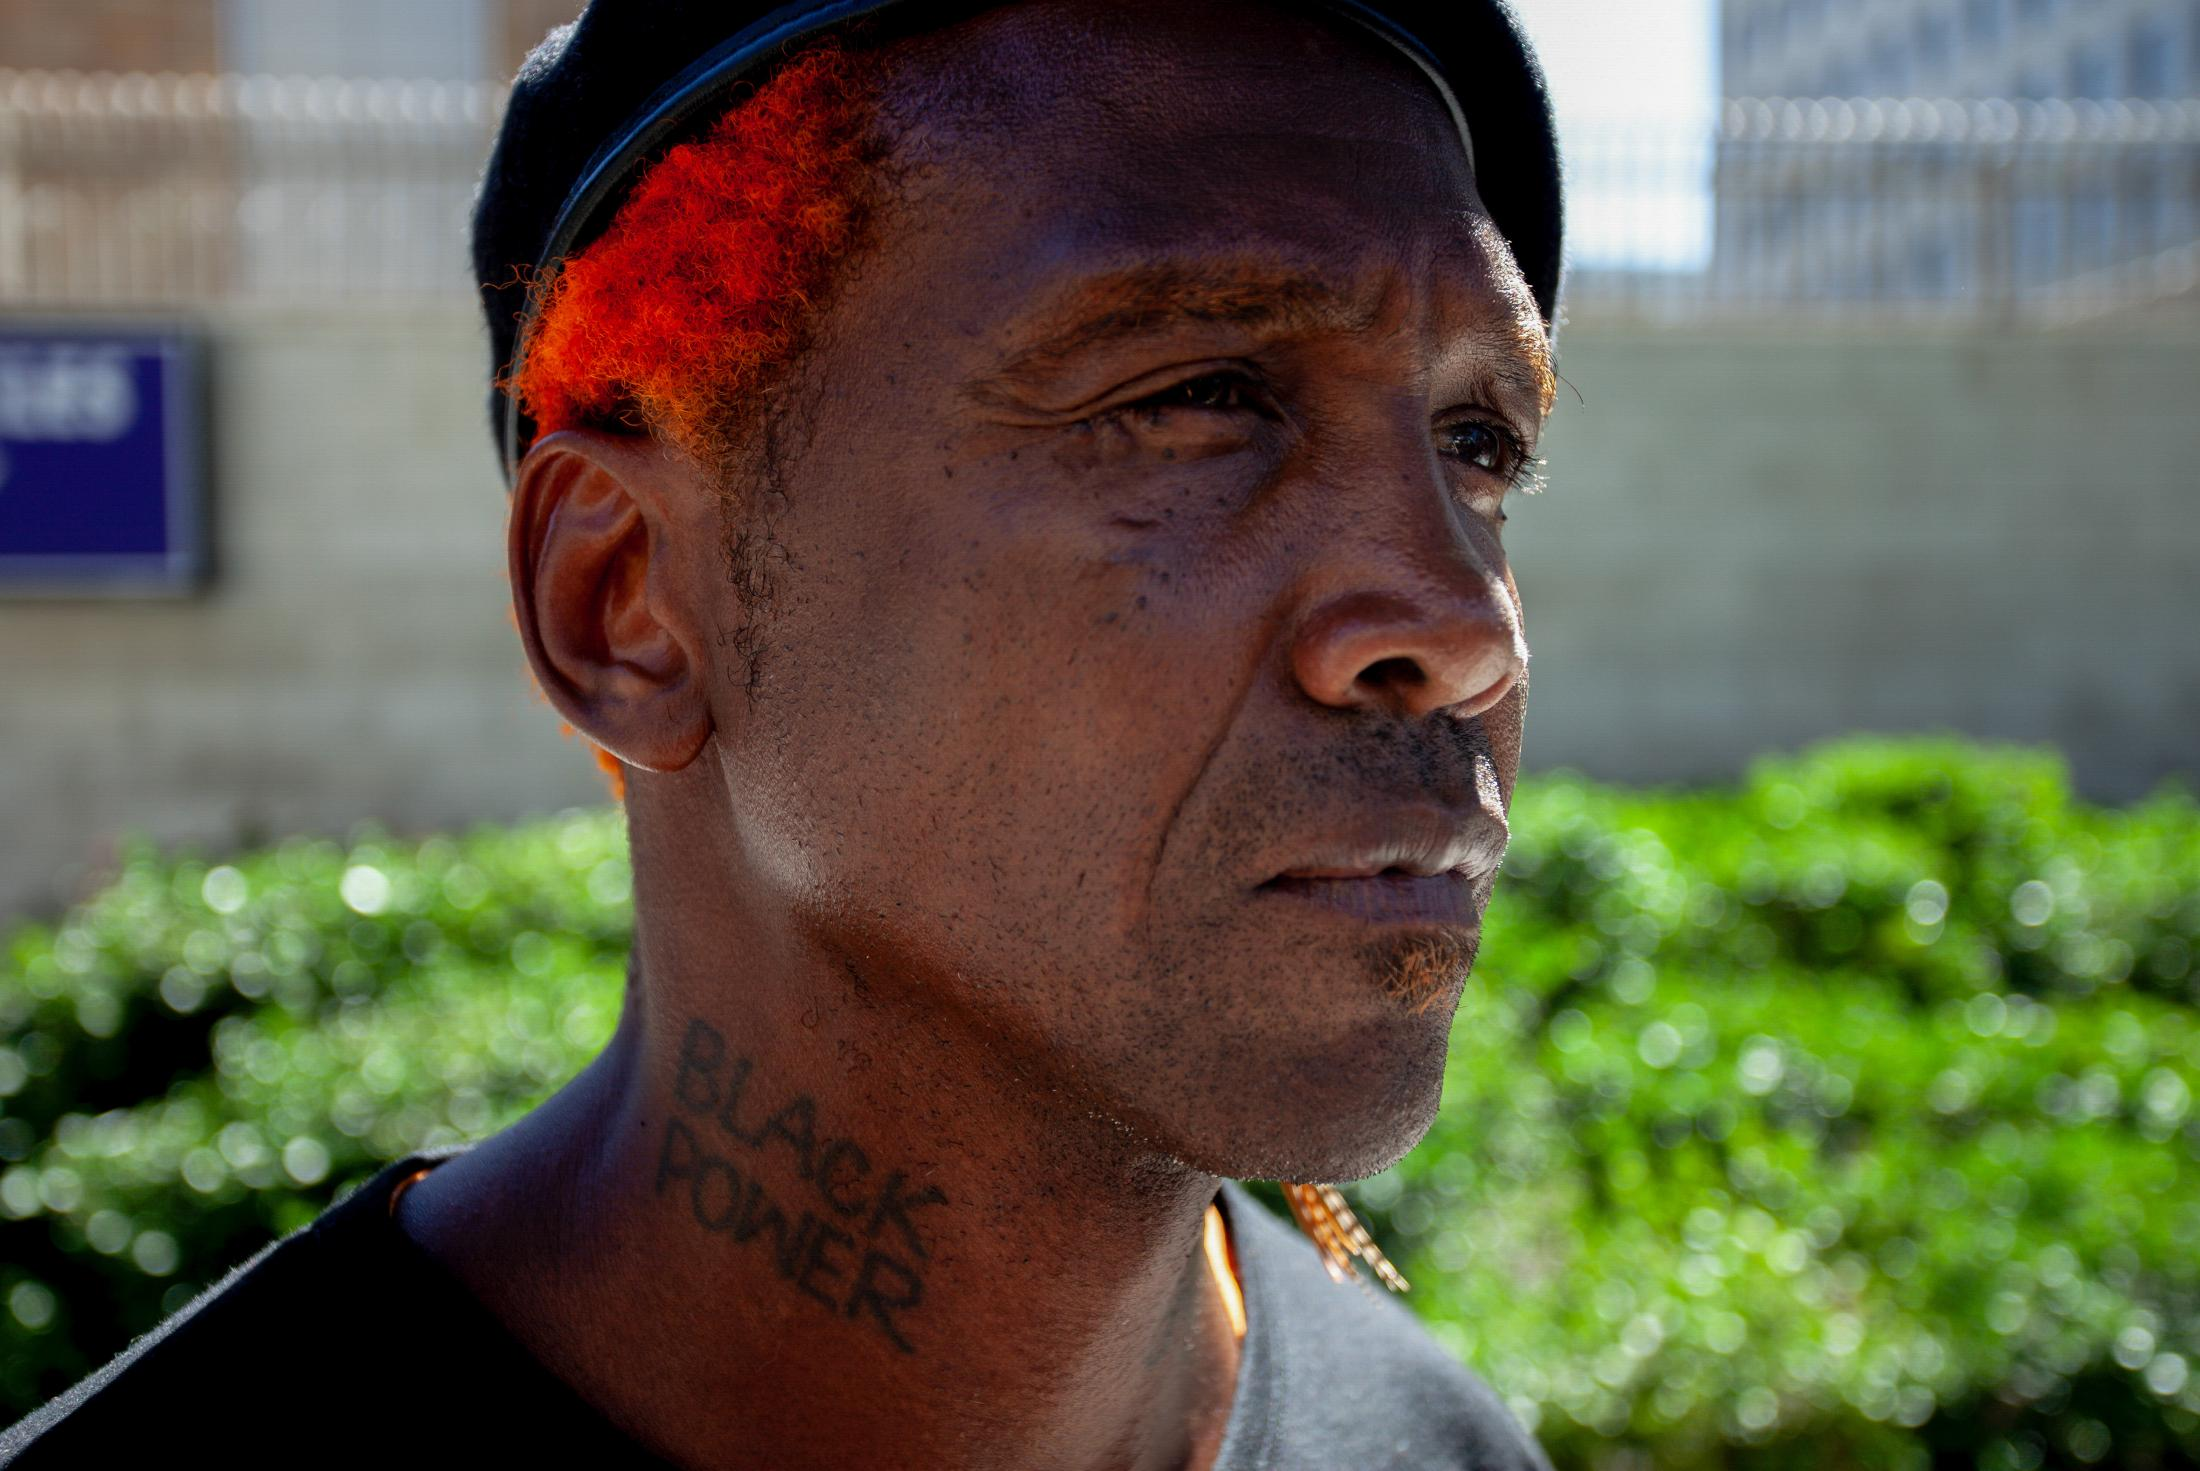 General Jeff, A Los Angeles activist, and Skid Row Advocate pose for a portrait.